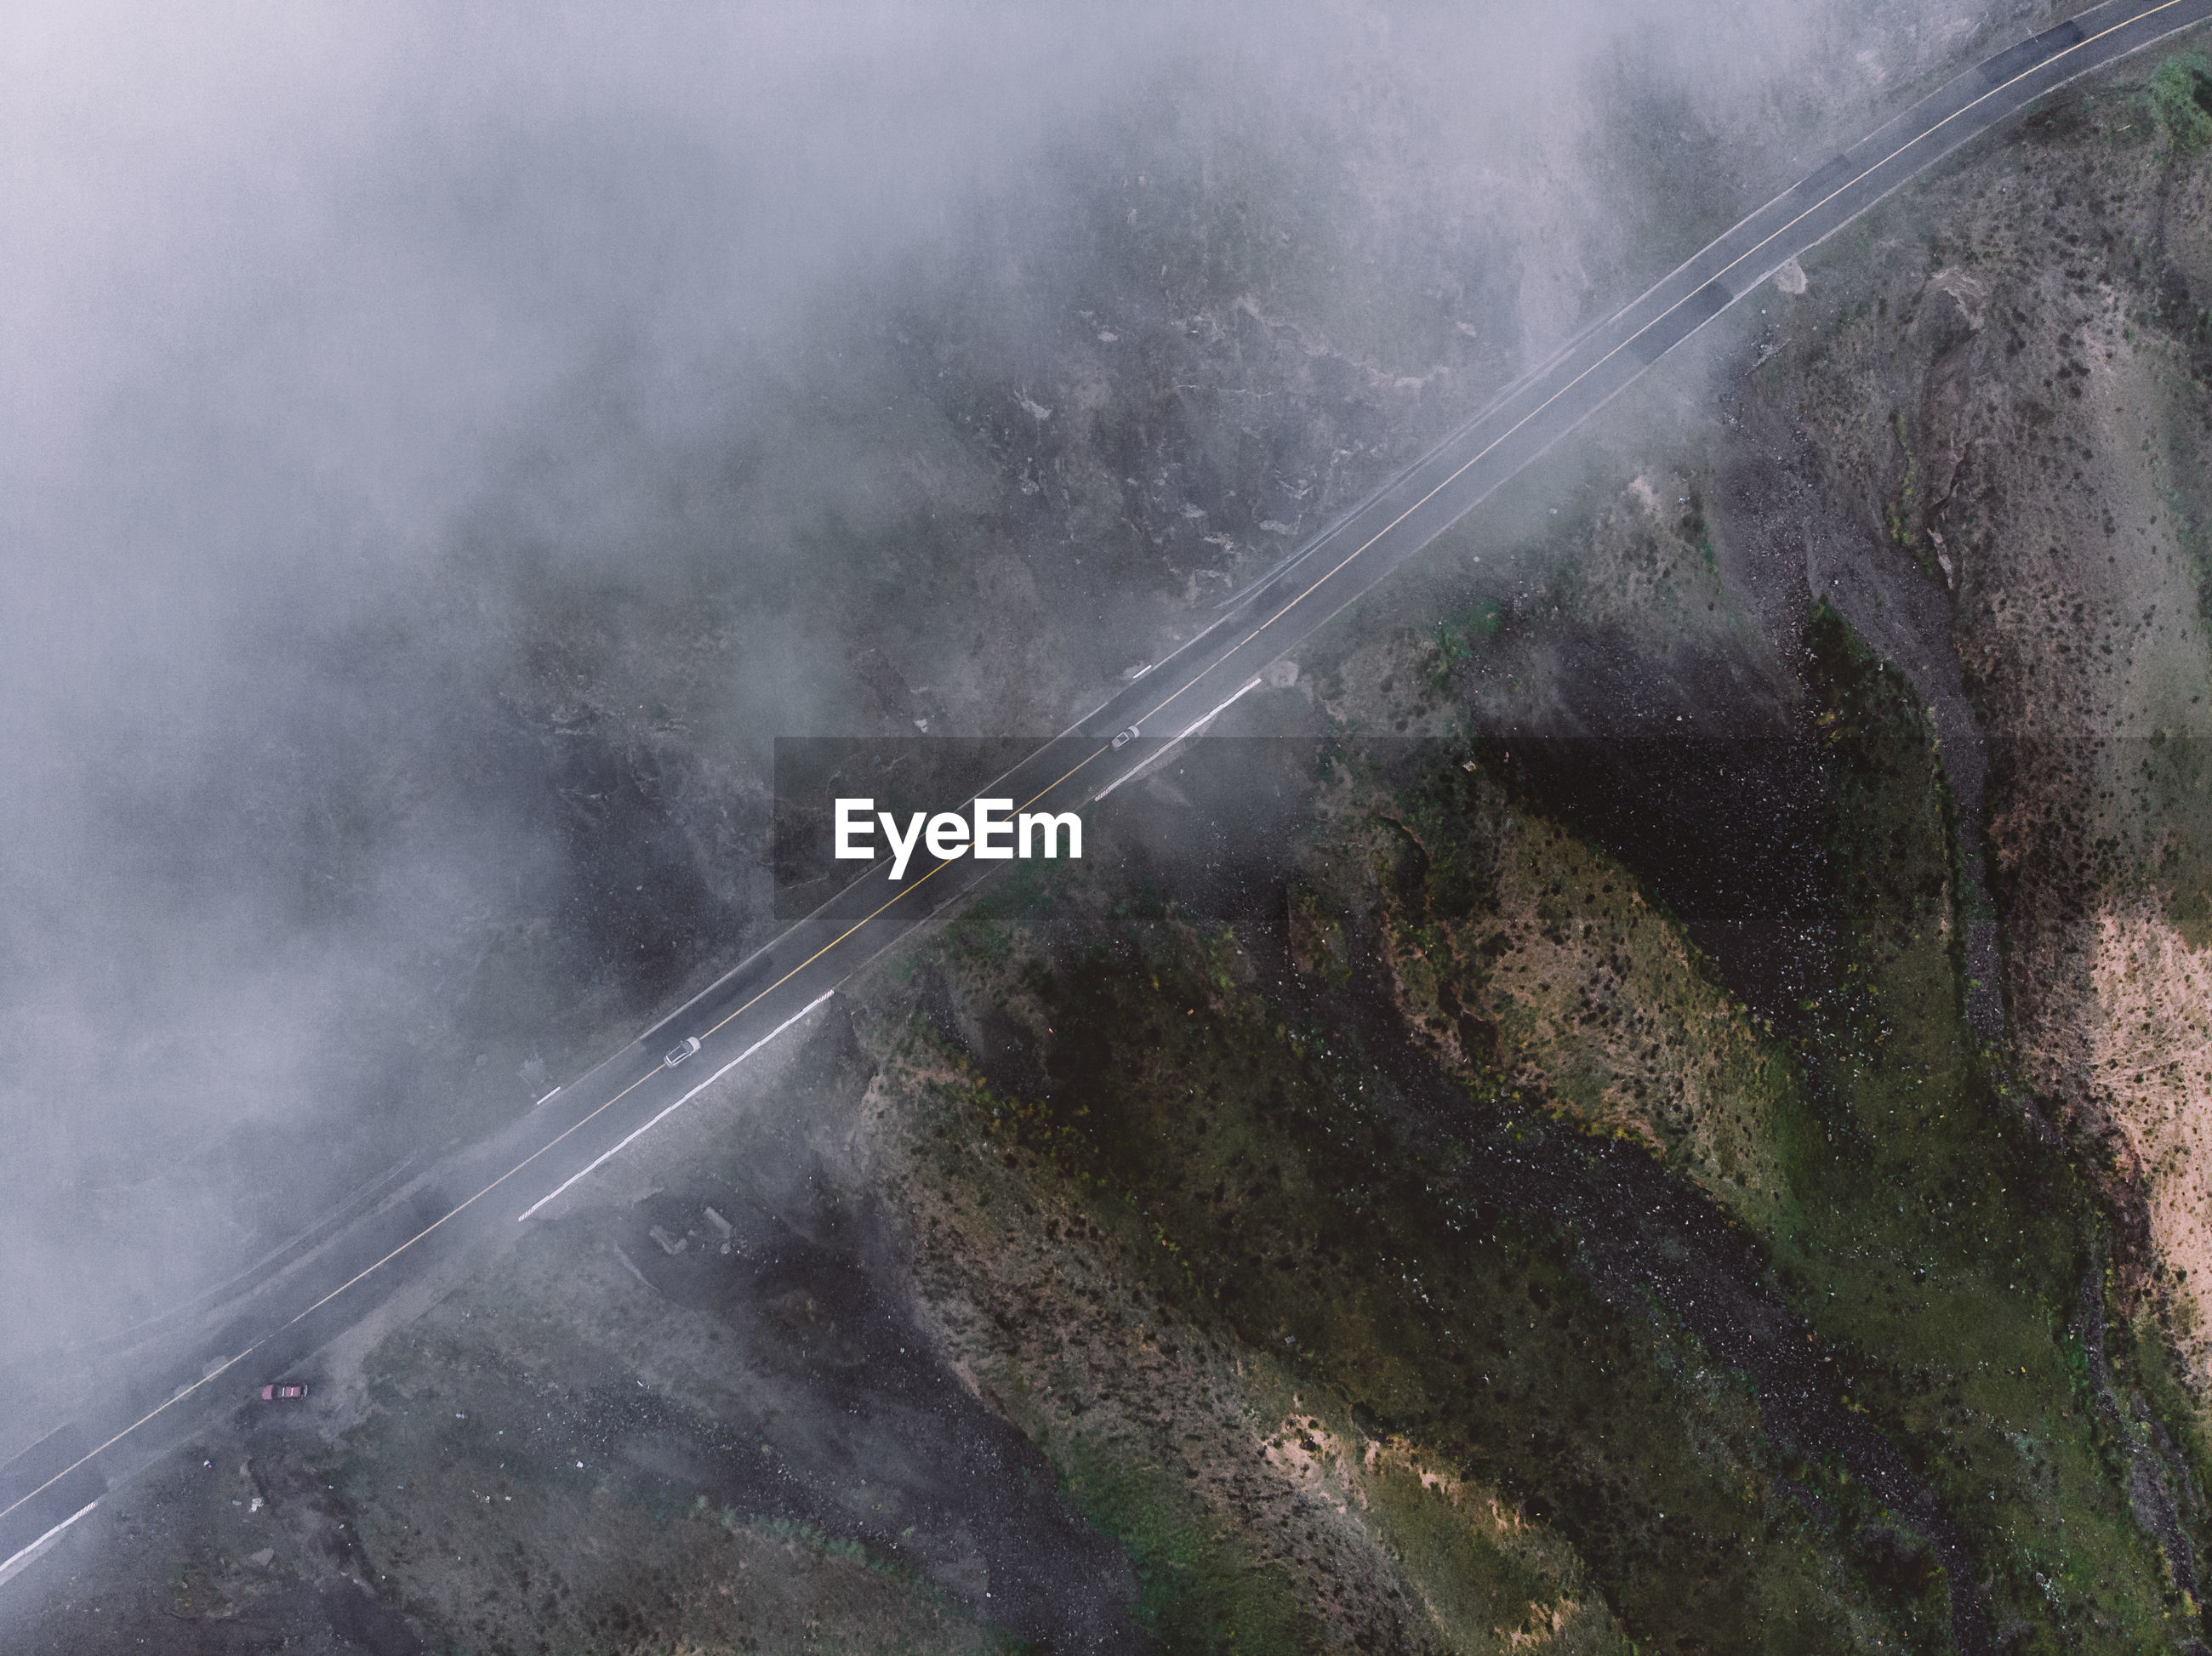 HIGH ANGLE VIEW OF ROAD AMIDST TREES AND MOUNTAINS